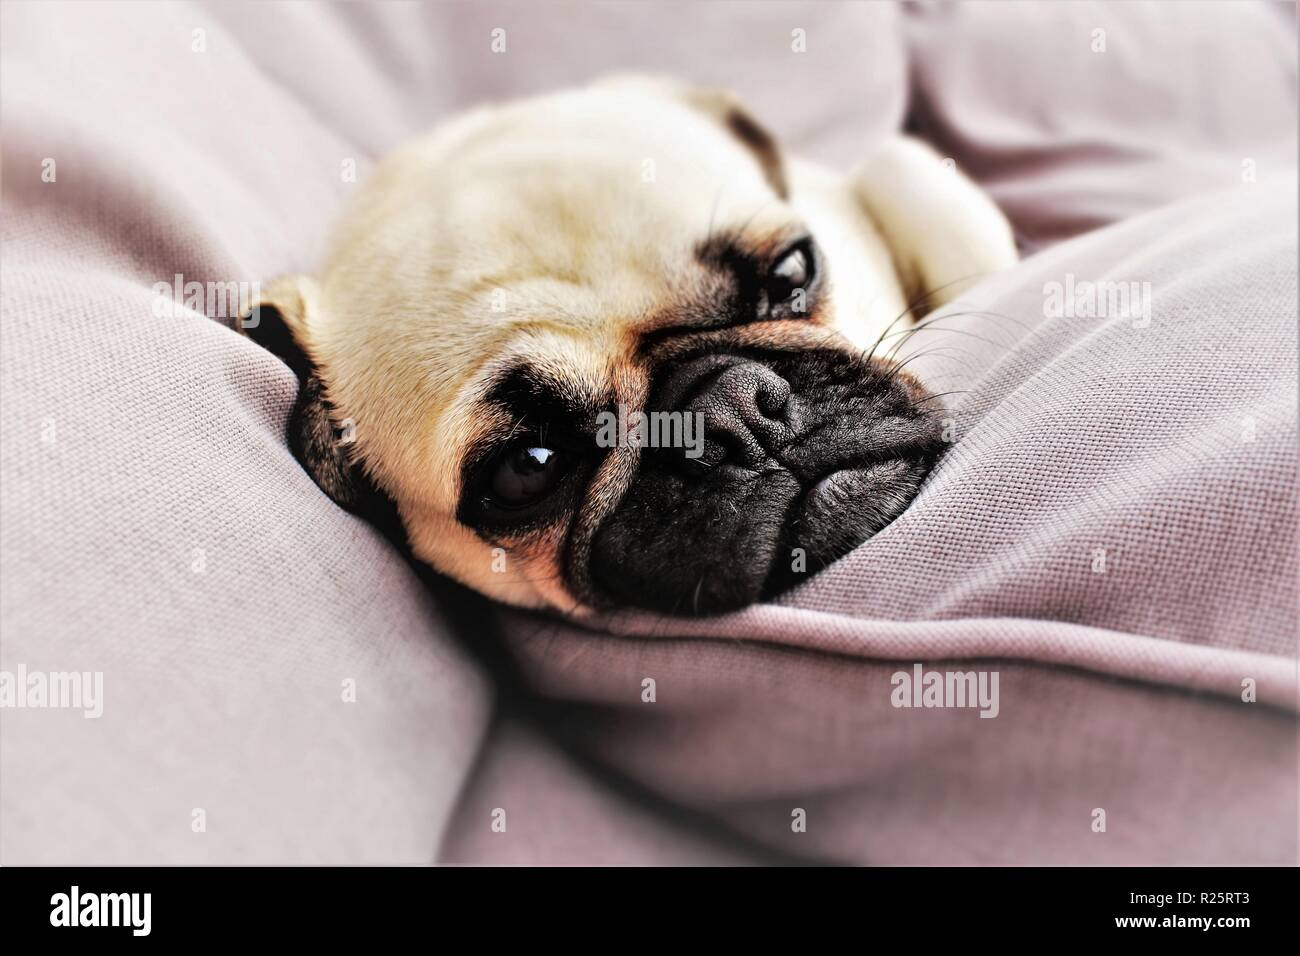 Conceptual photo portraying 'Daydreaming',with a one year old, male Pug dog used. Stock Photo